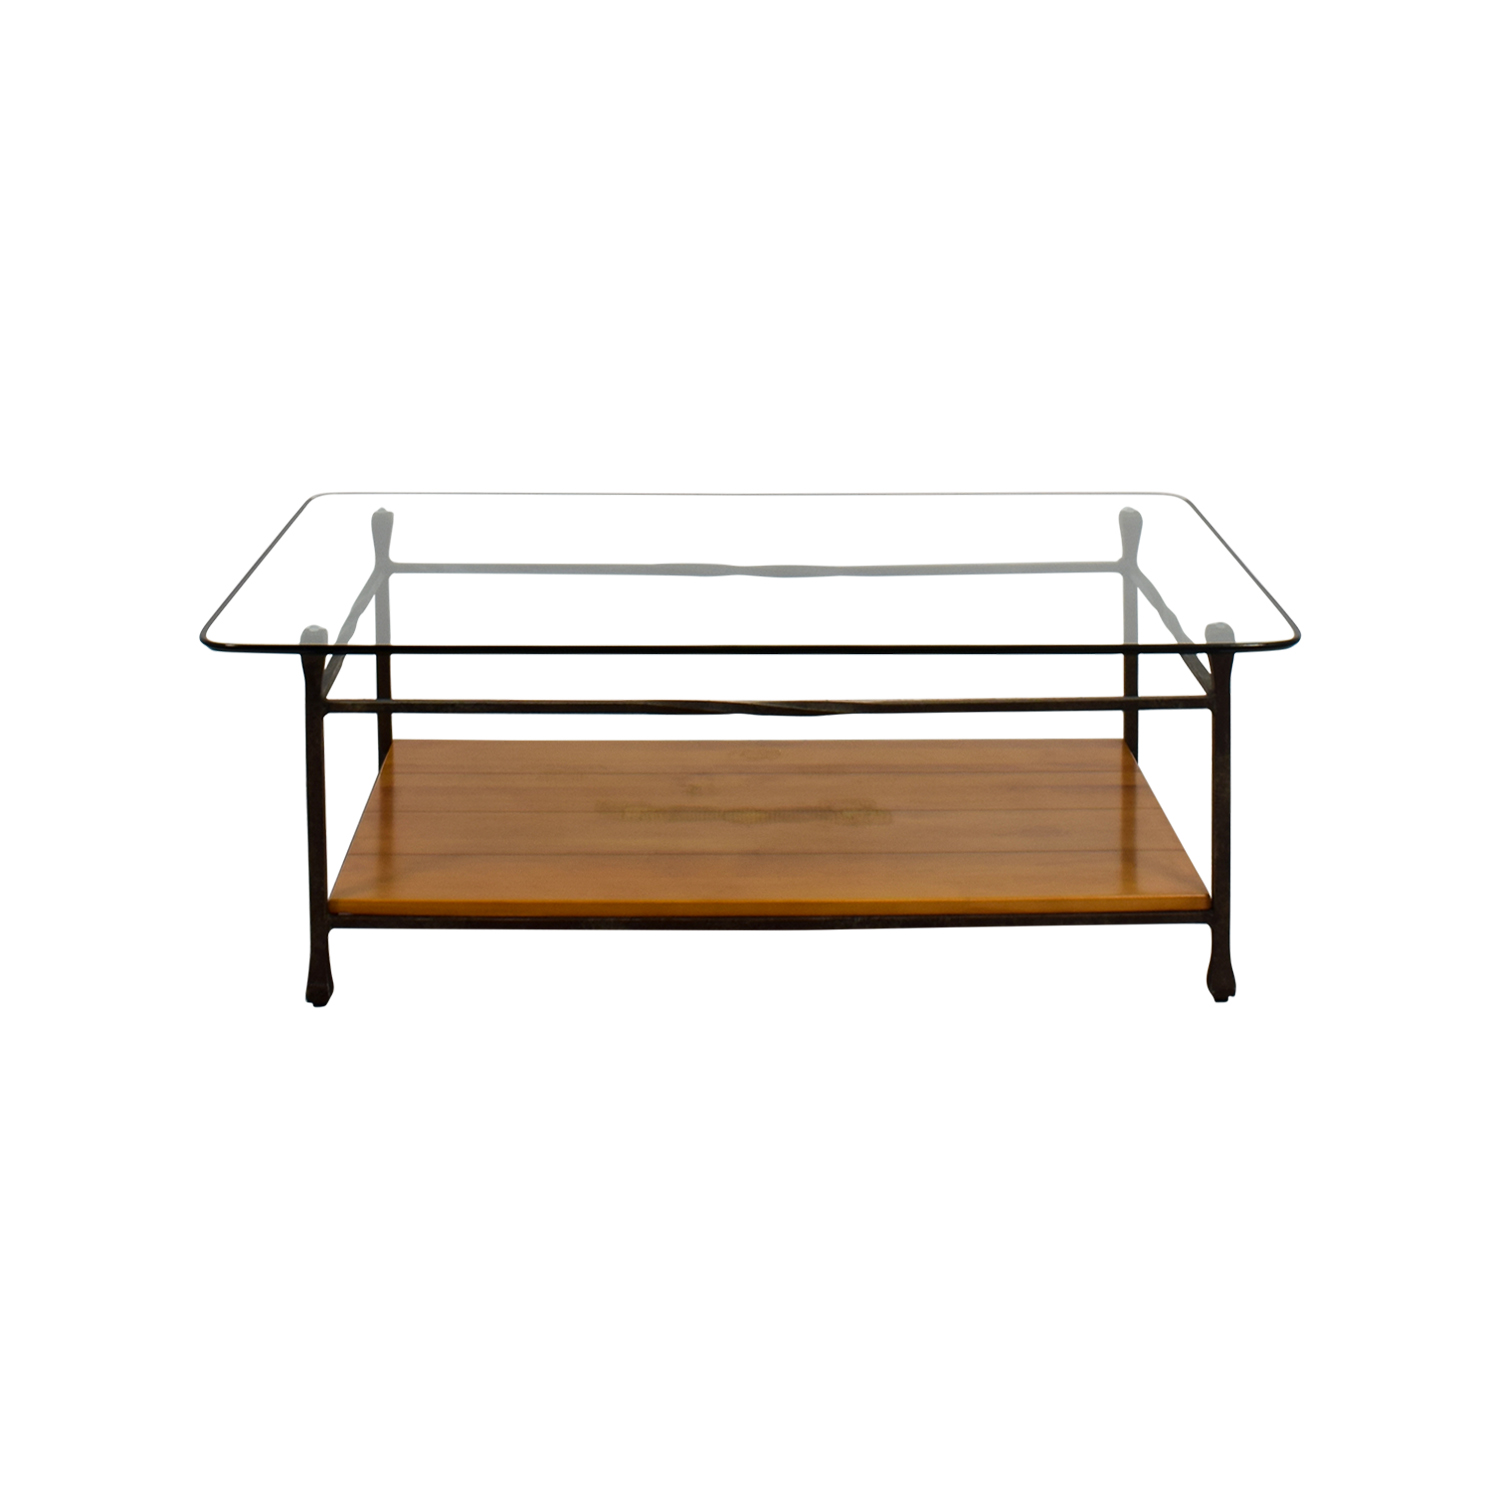 off ethan allen glass wood coffee table tables and end tiny round side log chairs furniture accent thin sofa ikea classic touch massage sheffield home pune square antique white